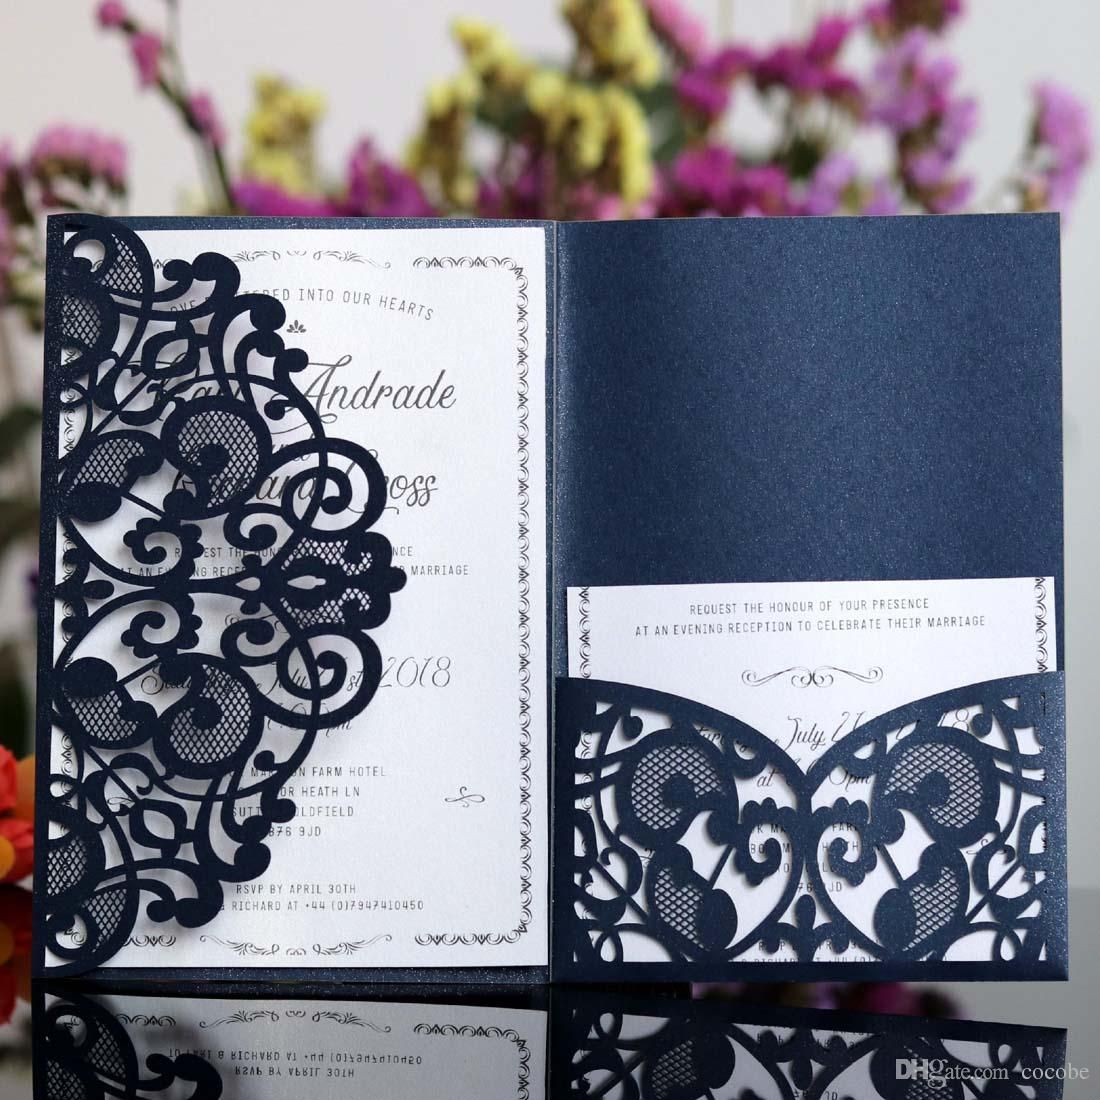 Laser Cut Wedding Invitations White Navy Blue Design Elegant For Marriage Birthday Party Invitation Cards With RSVP Card Templates Free